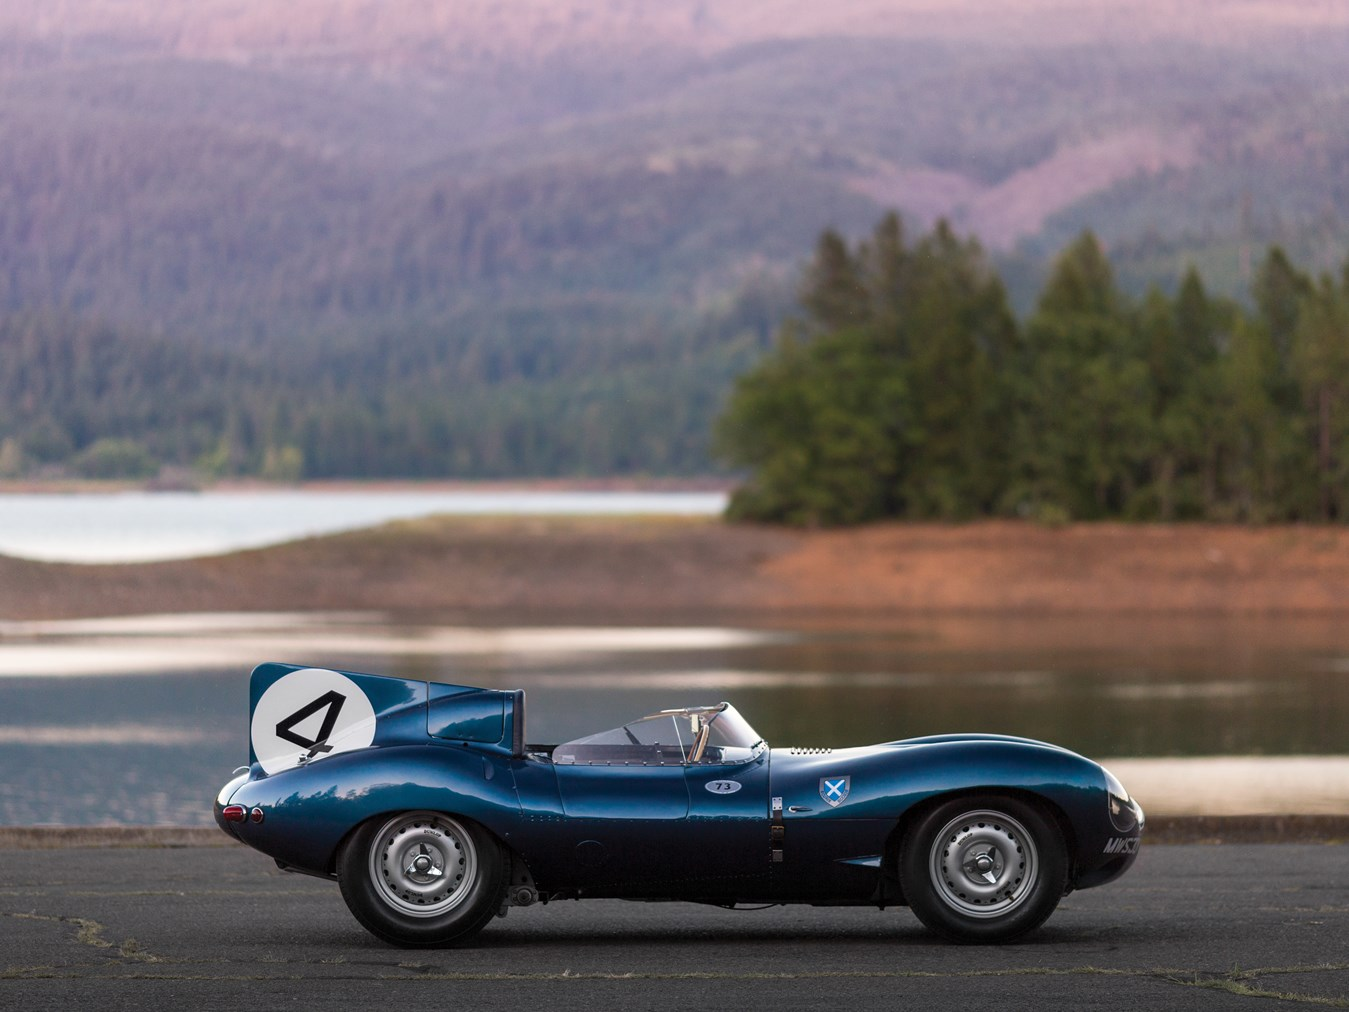 le mans winning jaguar d type sets record price for british cars sold at auction autoevolution. Black Bedroom Furniture Sets. Home Design Ideas